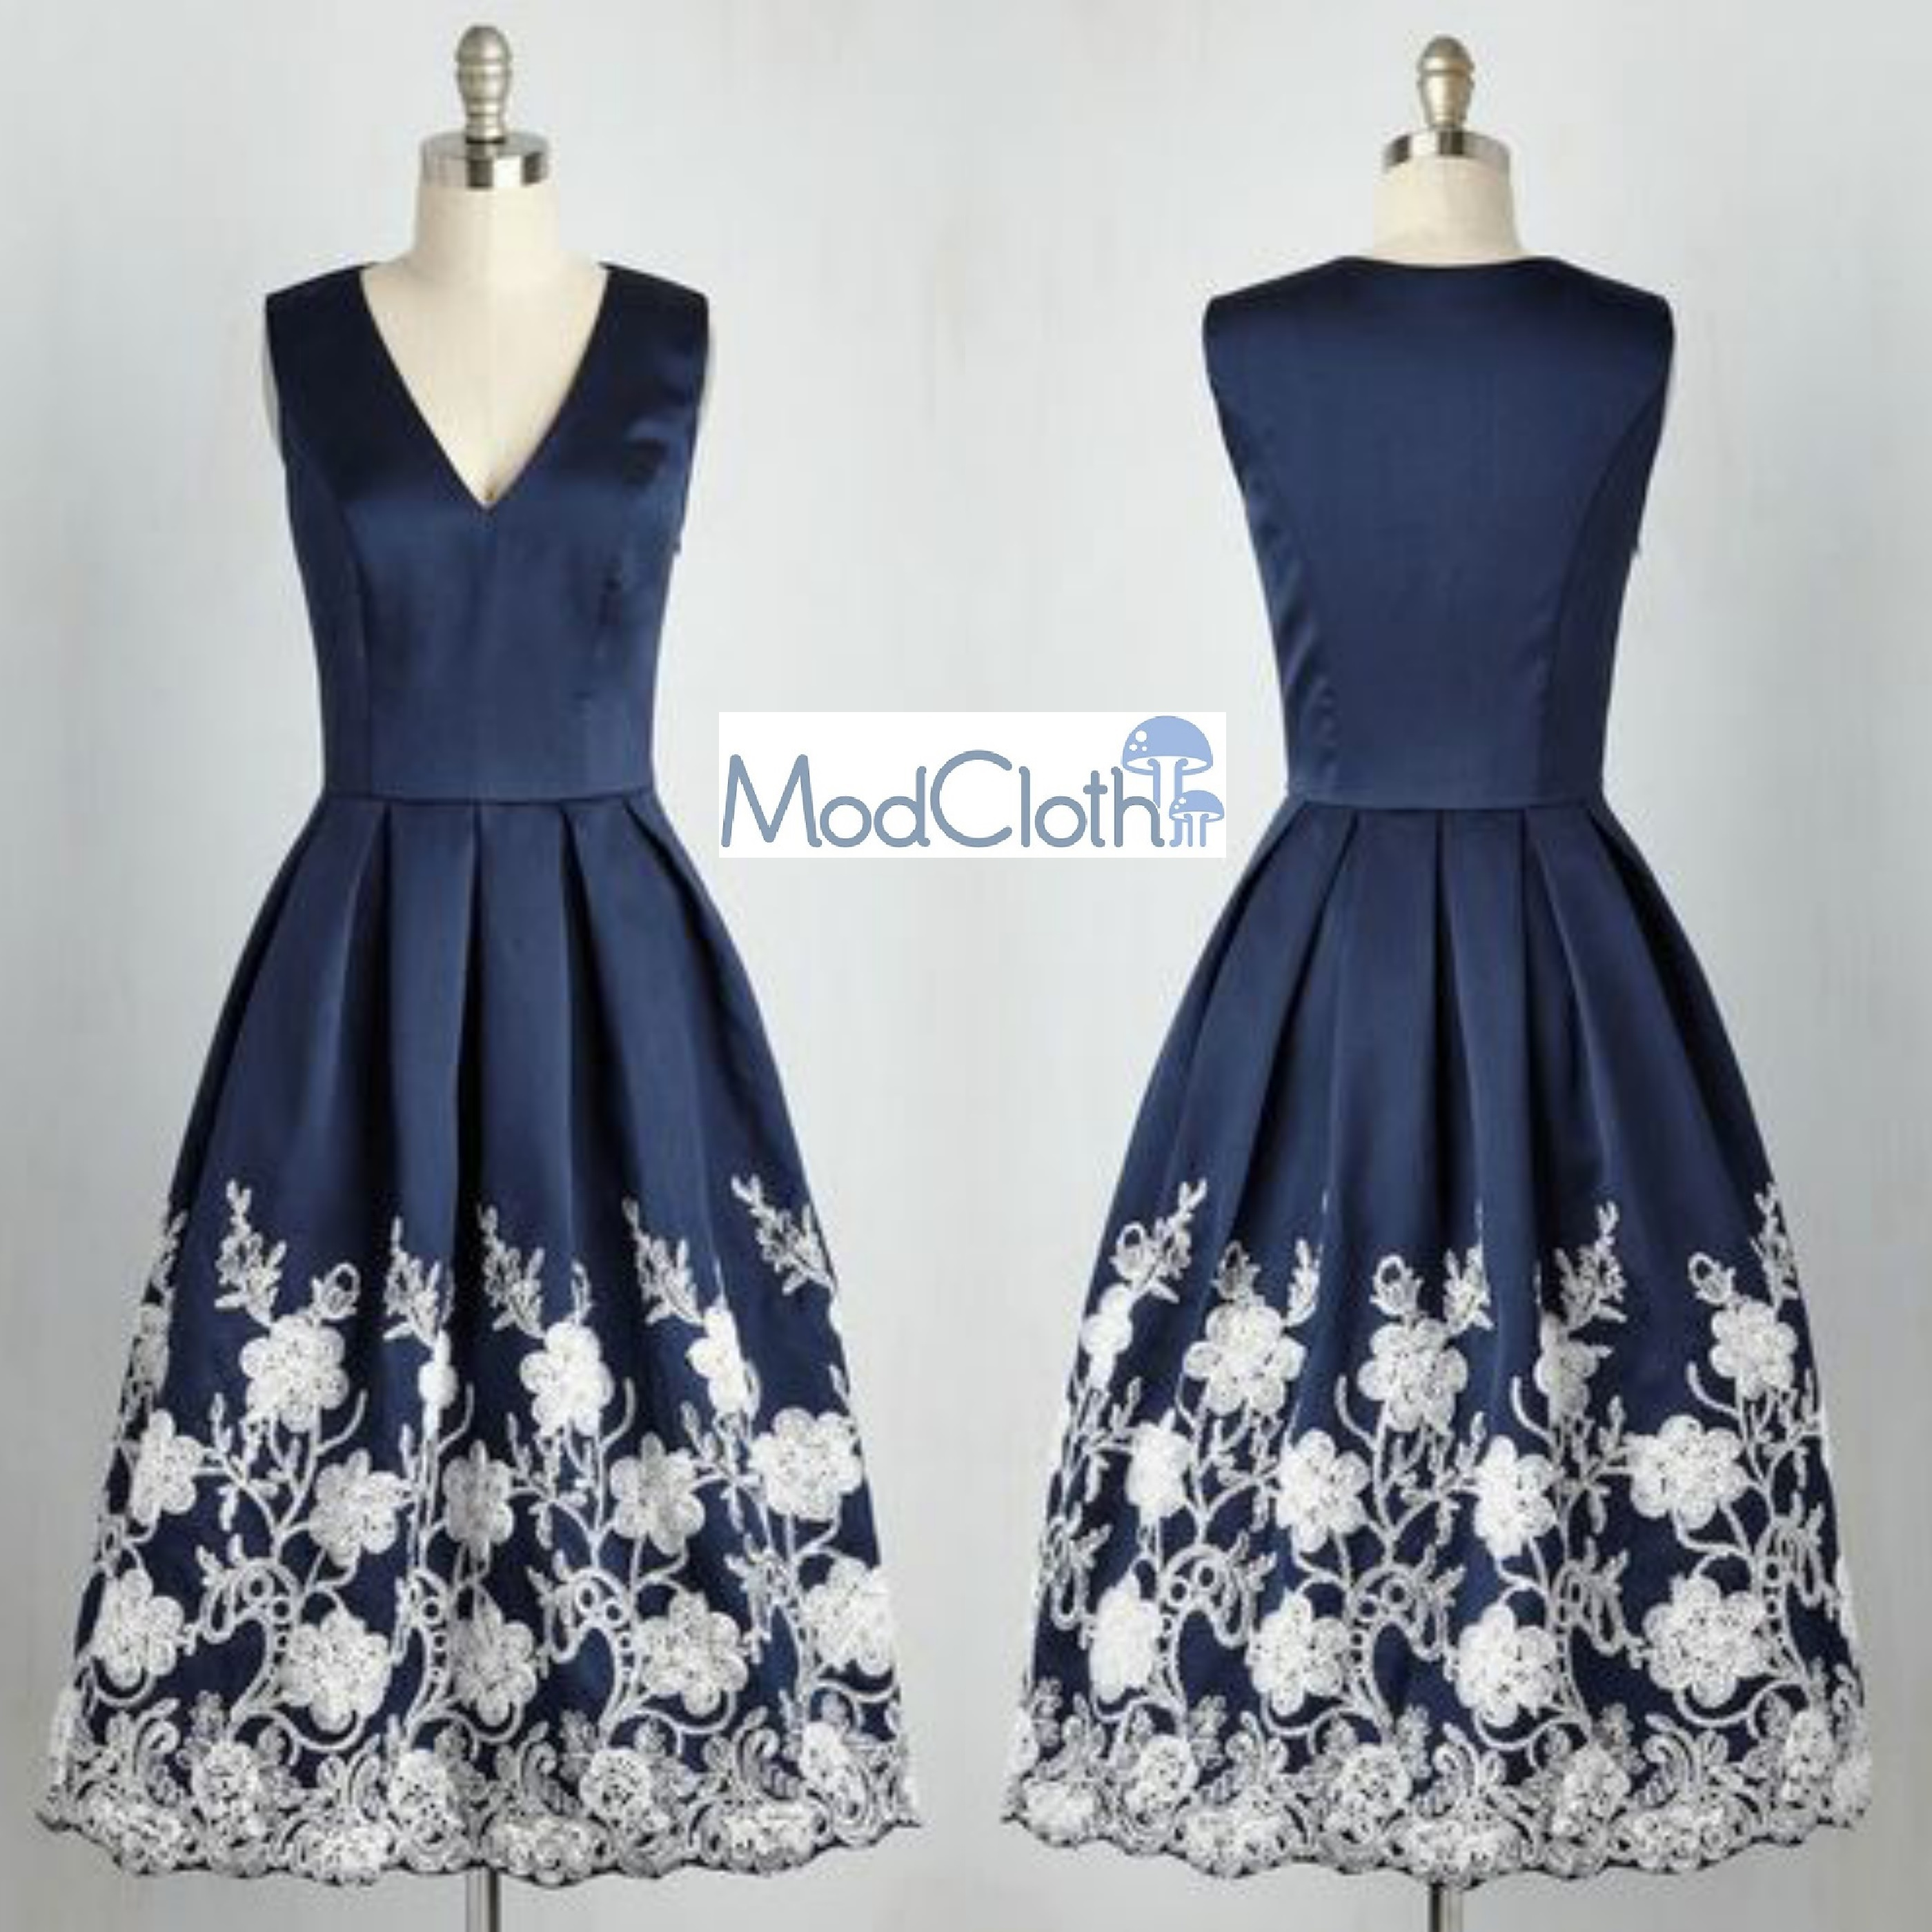 If you love shopping for indie fashion, Modcloth promo codes are a great way to save instantly. Start by signing up for Modcloth emails to get a coupon for your first purchase. Modcloth also offers discounts when you haven't shopped with them for awhile or if you leave something in your cart%(61).